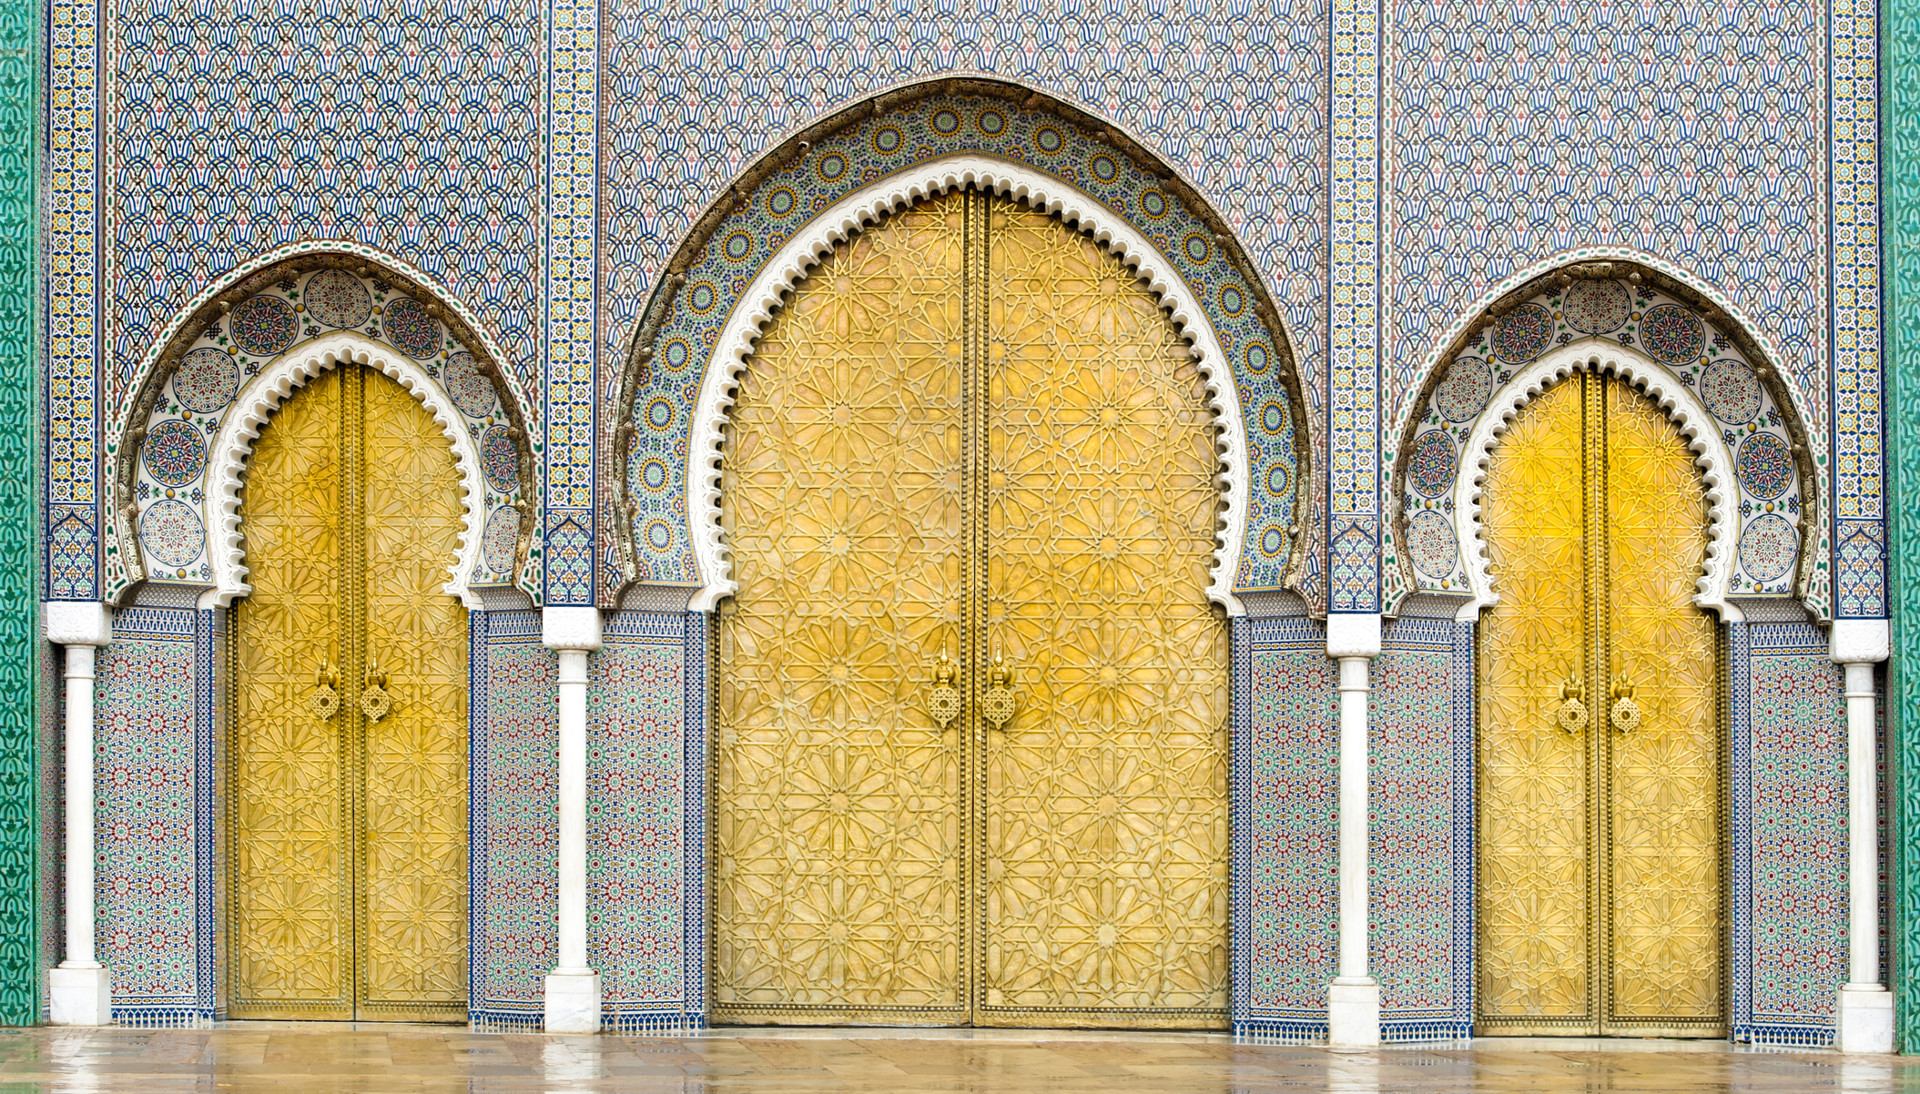 Custom Travel Planner Network-Morocco-Royal Palace in Fez